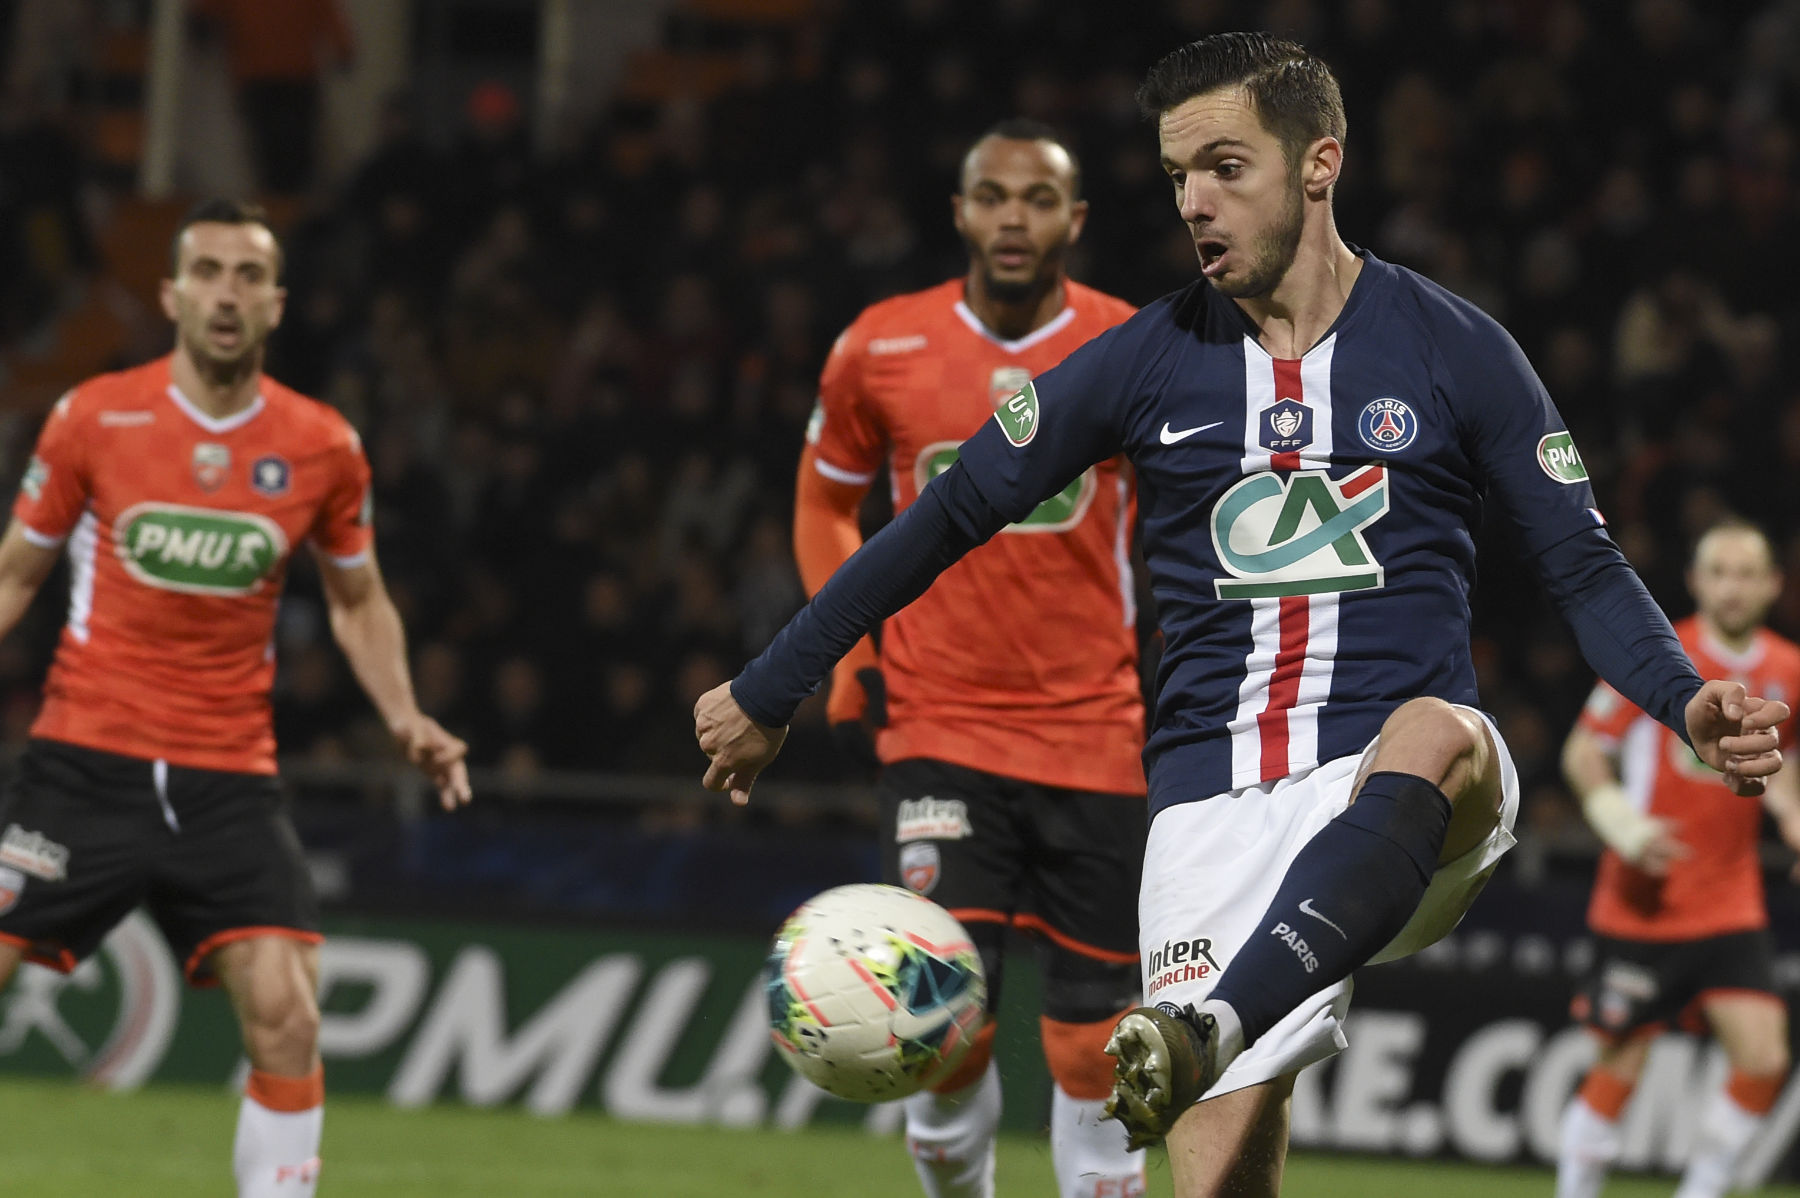 PSG's Win Over Lorient Wasn't Pretty But It Was What They Needed ...